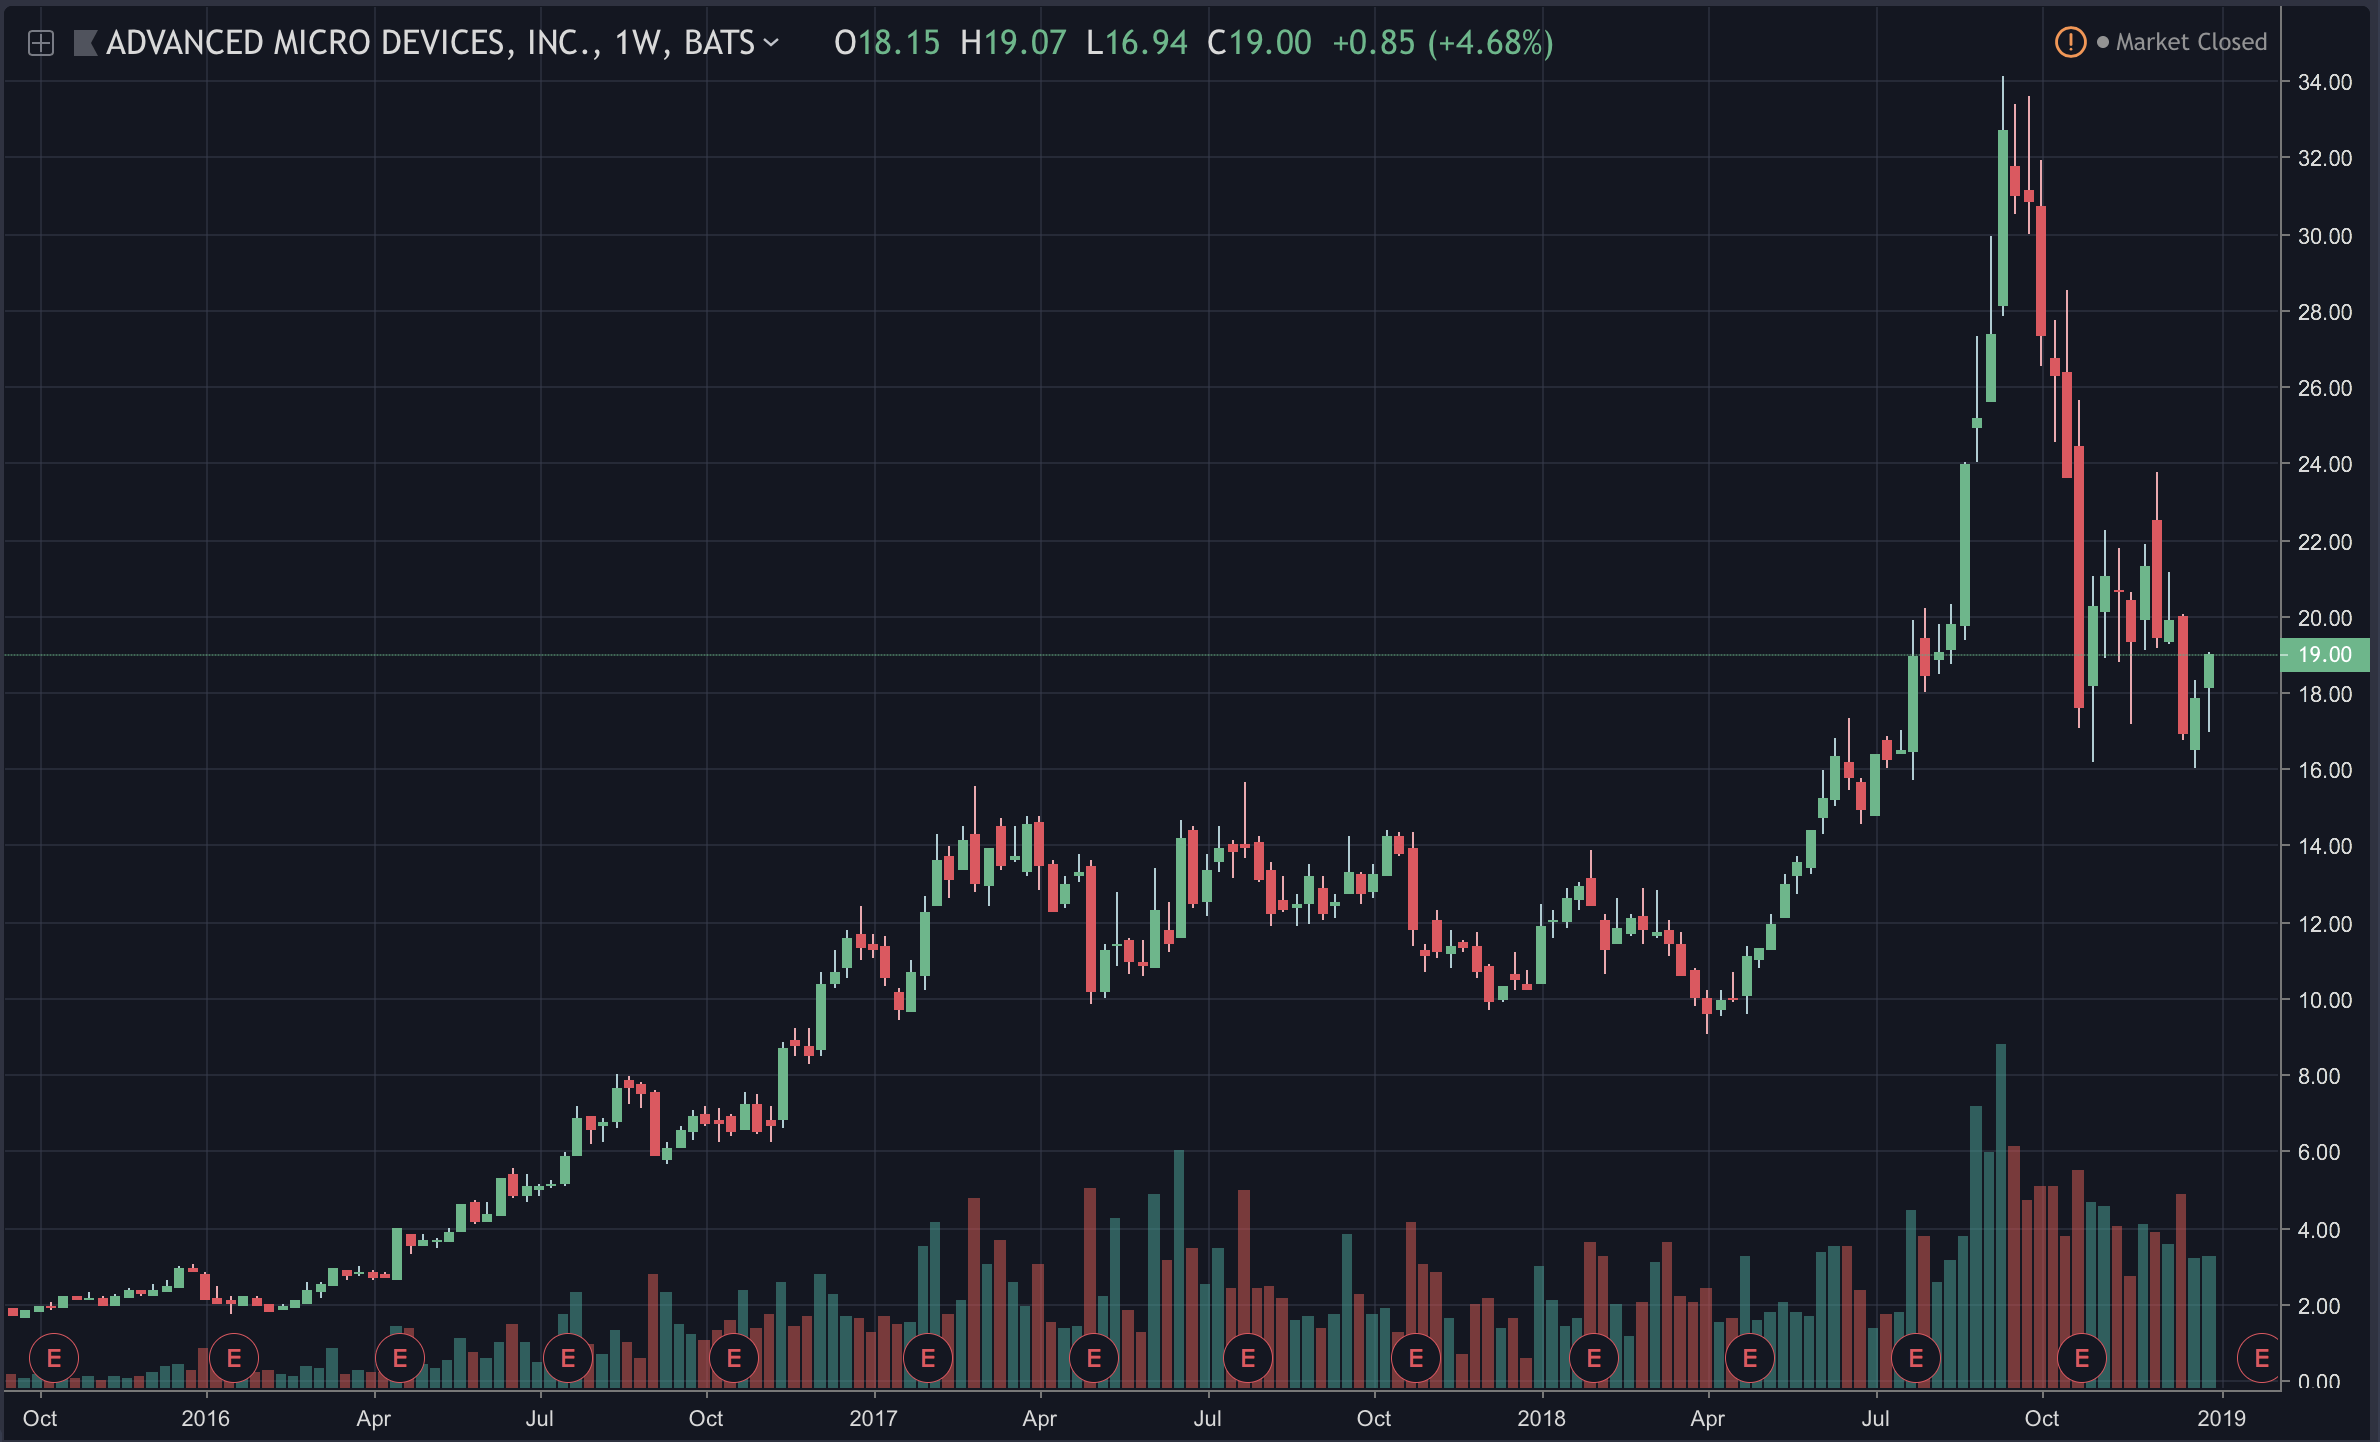 AMD's Stock Jumps 10%, Partnership with ConsenSys Announced